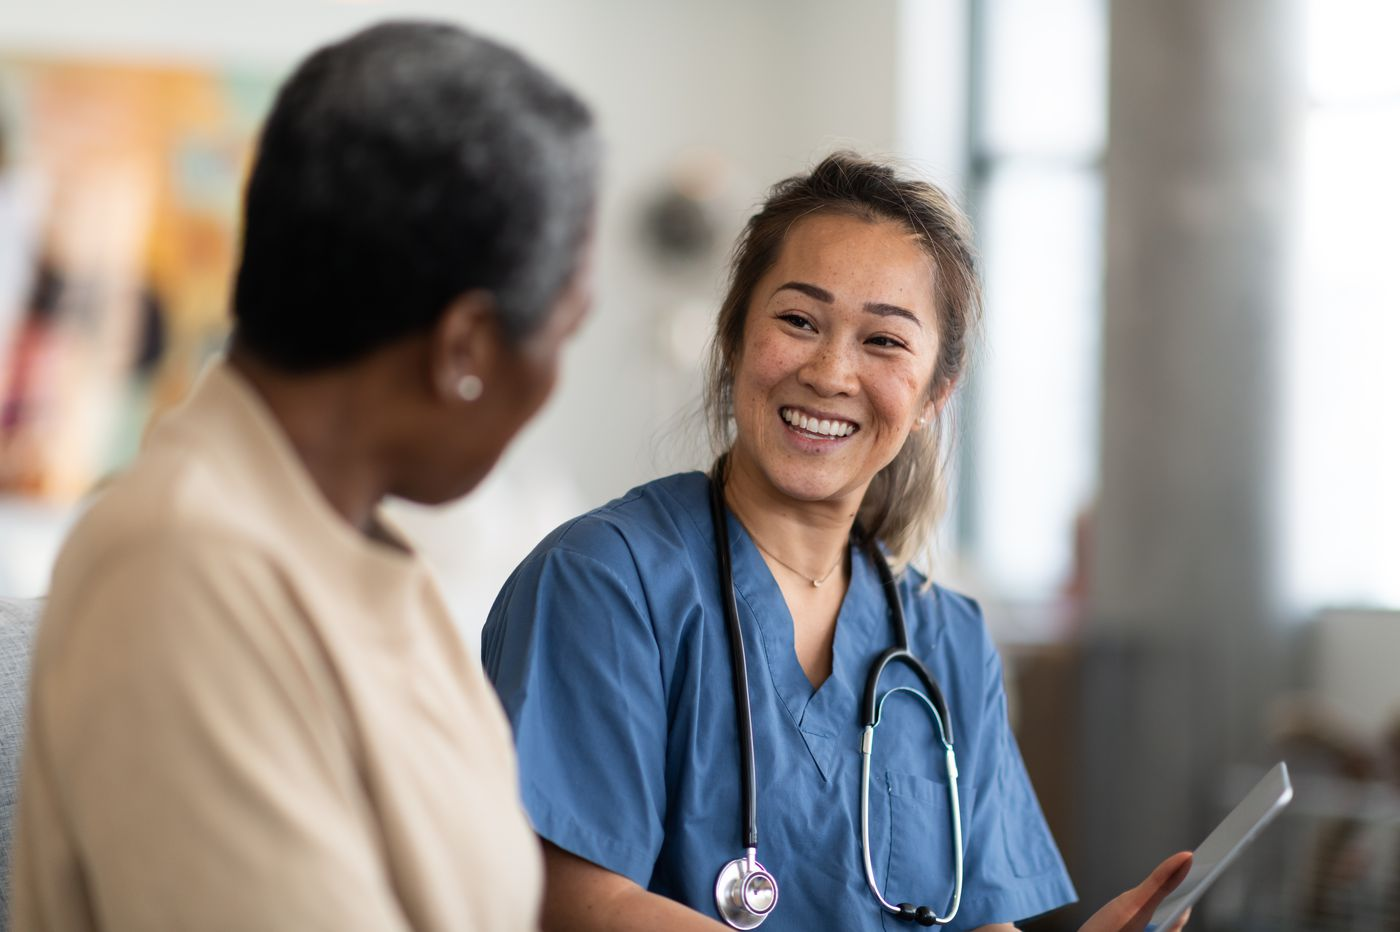 Expanding the role of nurse practitioners should be low-hanging fruit for health-care reform | Opinion